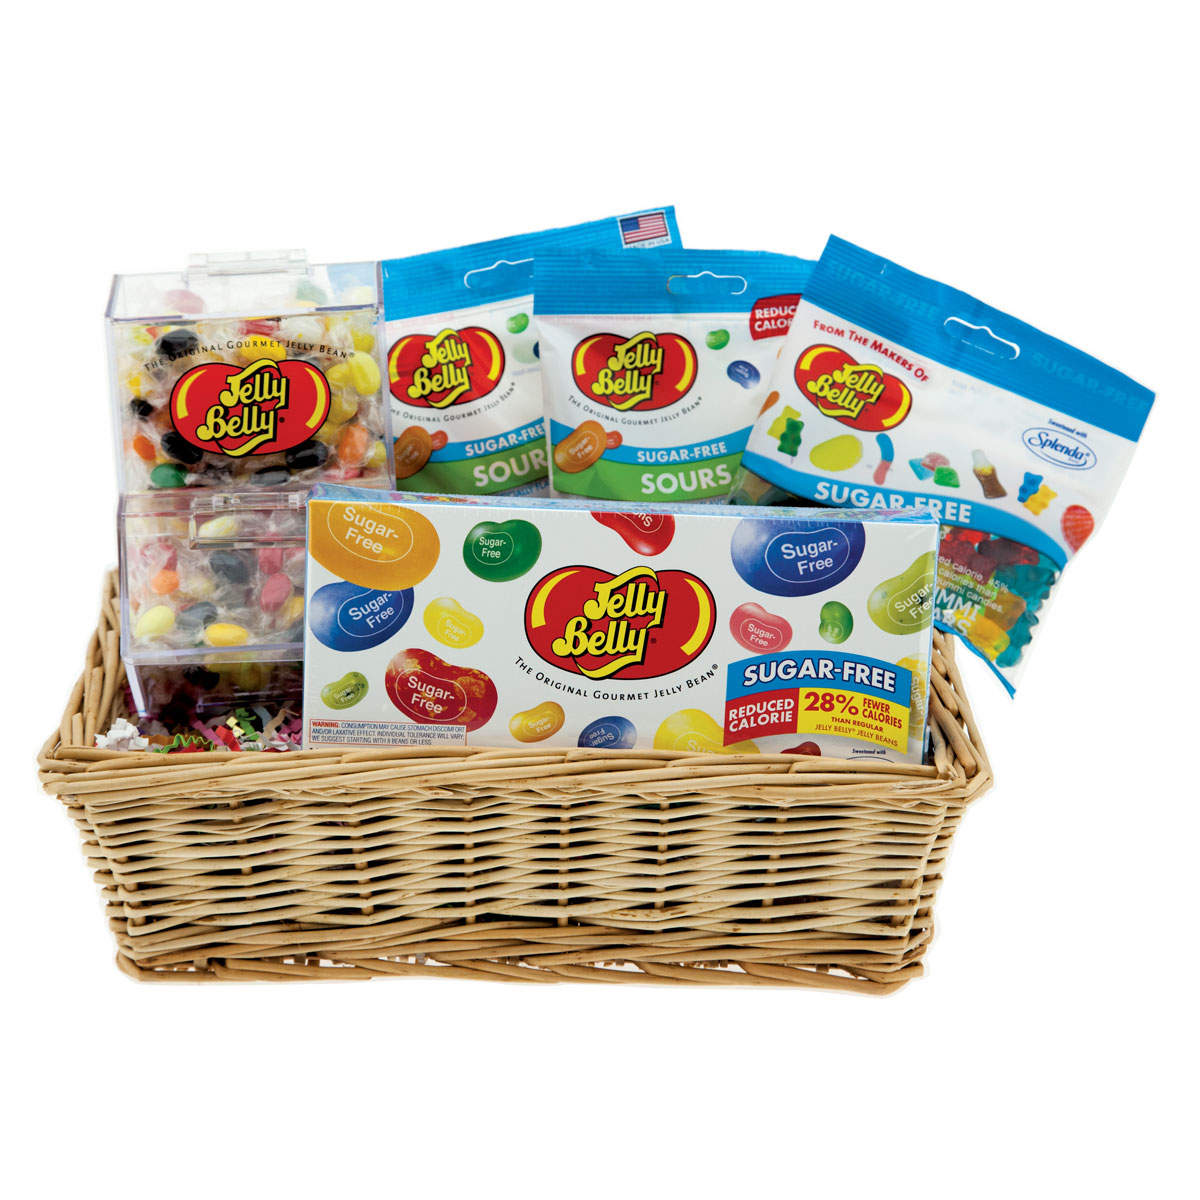 Sugar free assortment gift basket jelly belly candy company negle Gallery